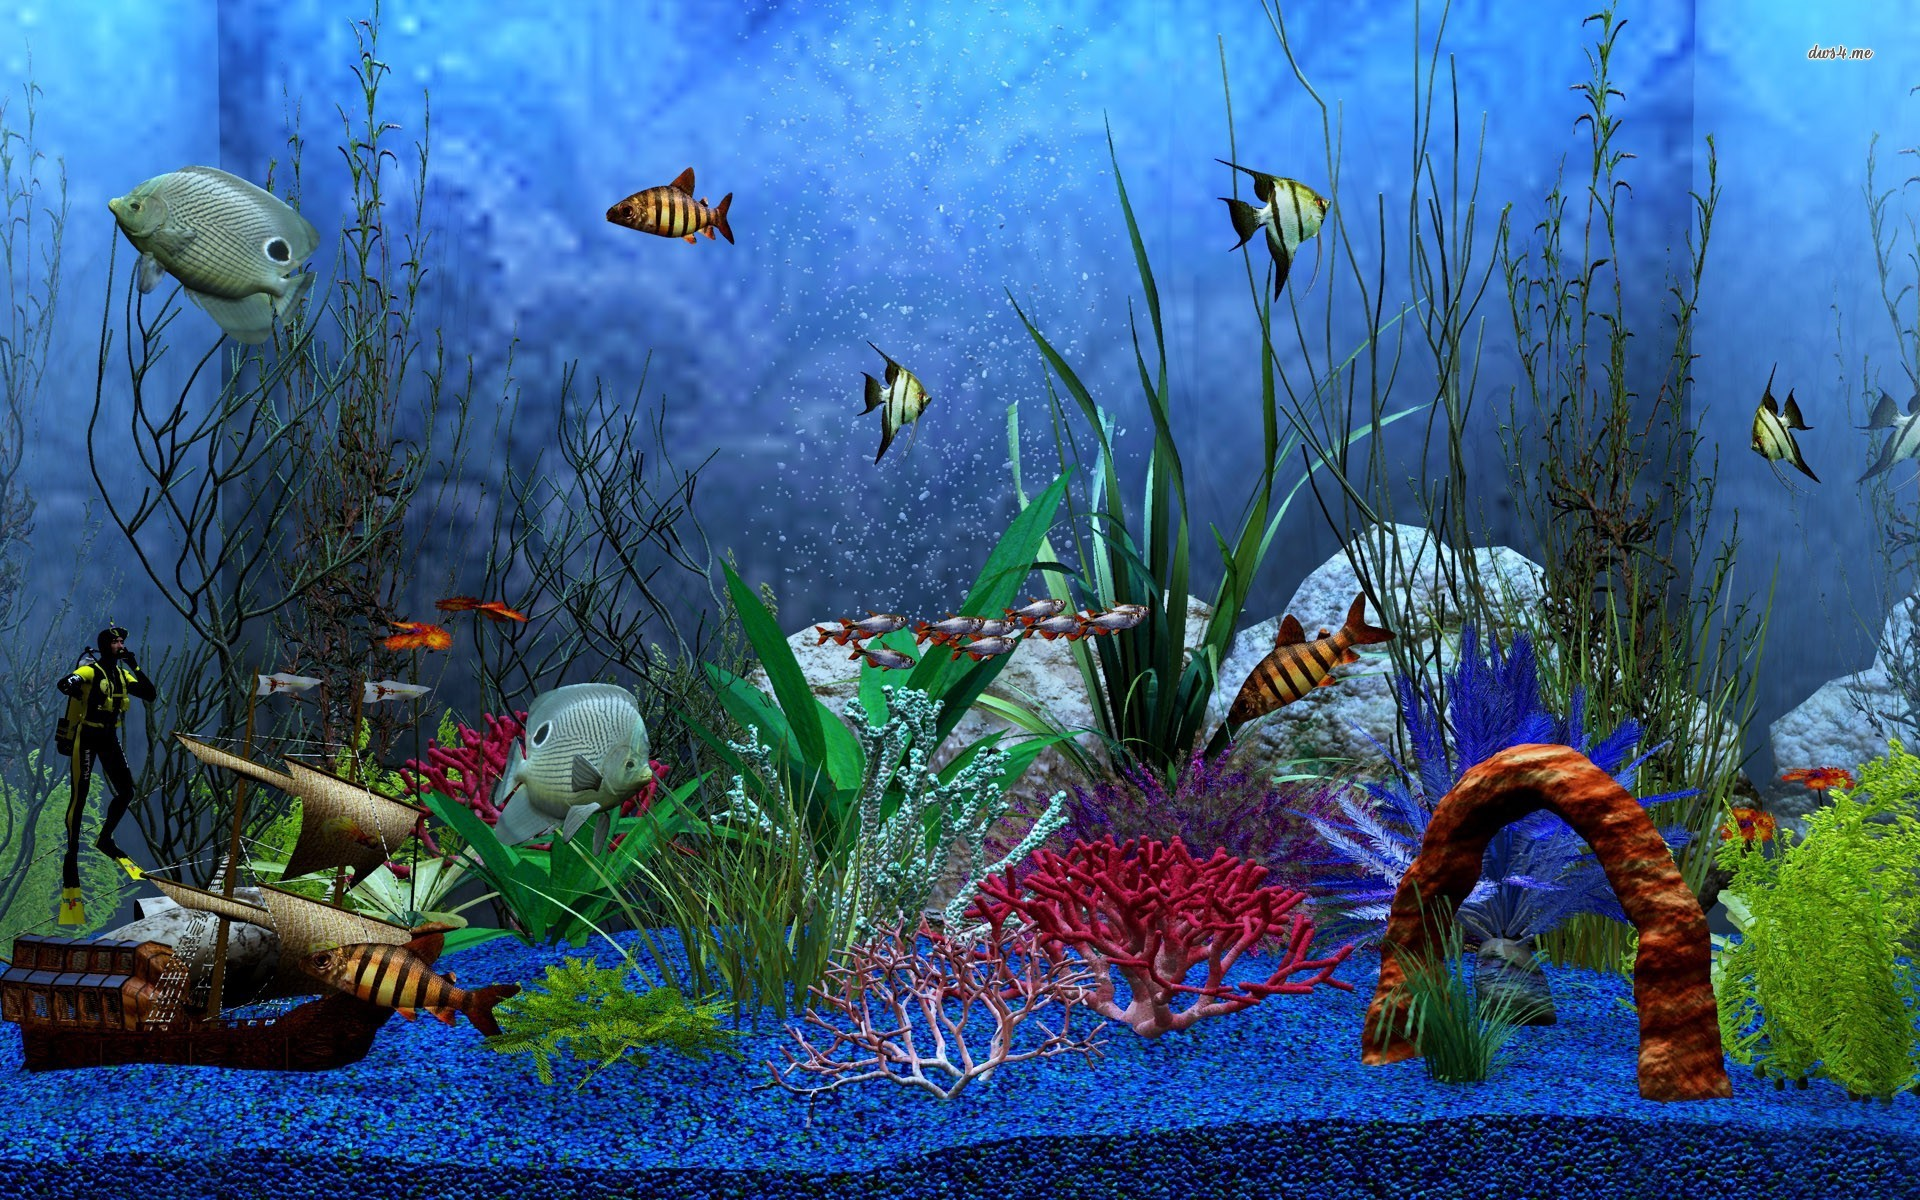 aquarium hd wallpaper - photo #32